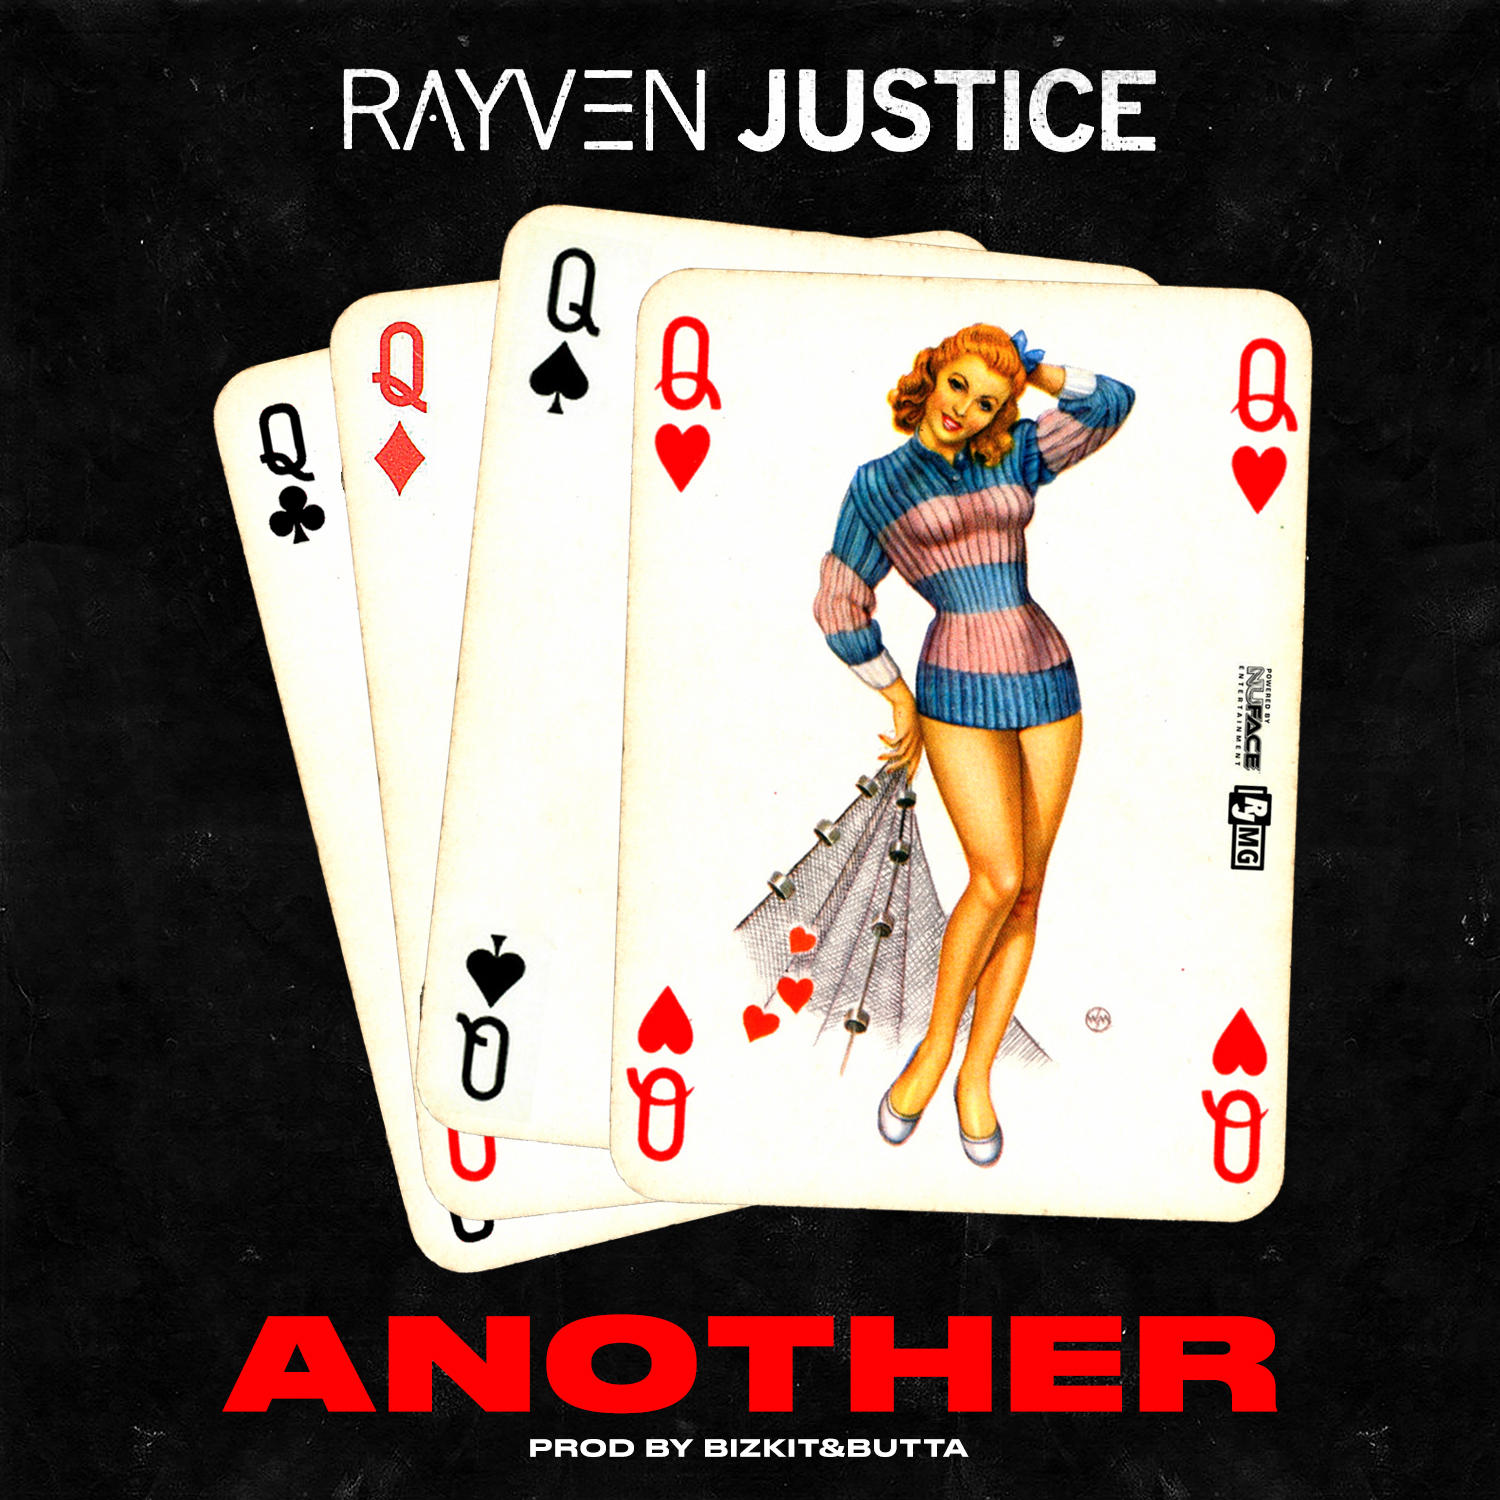 rayven justice - Another